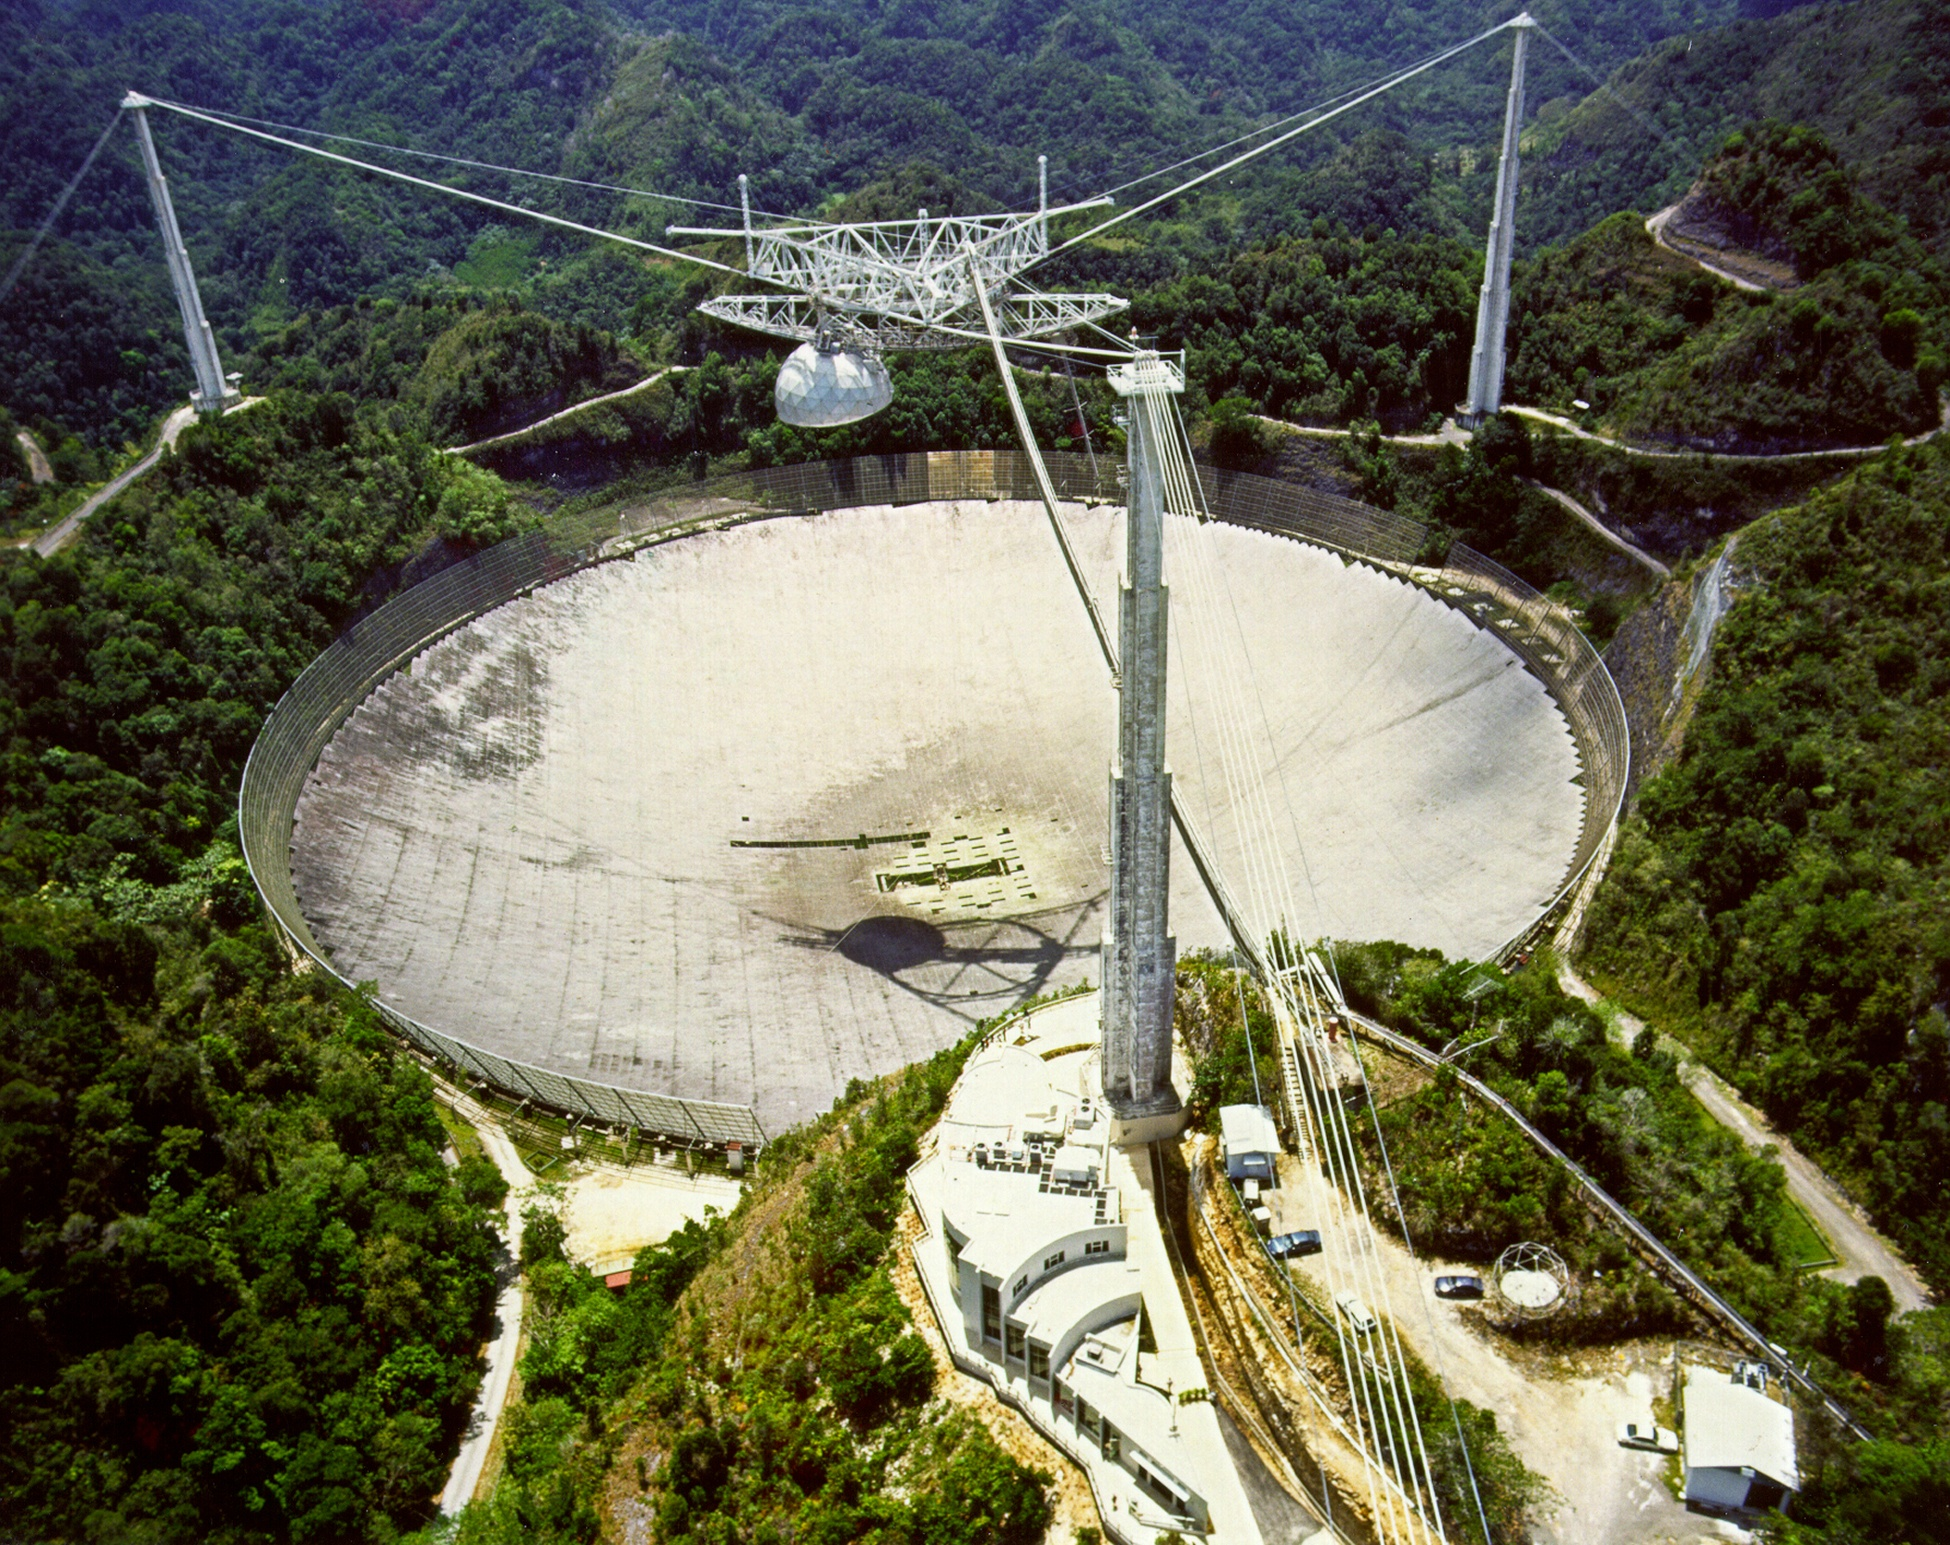 The 1,000-foot-diameter radio telescope at Arecibo, Puerto Rico.